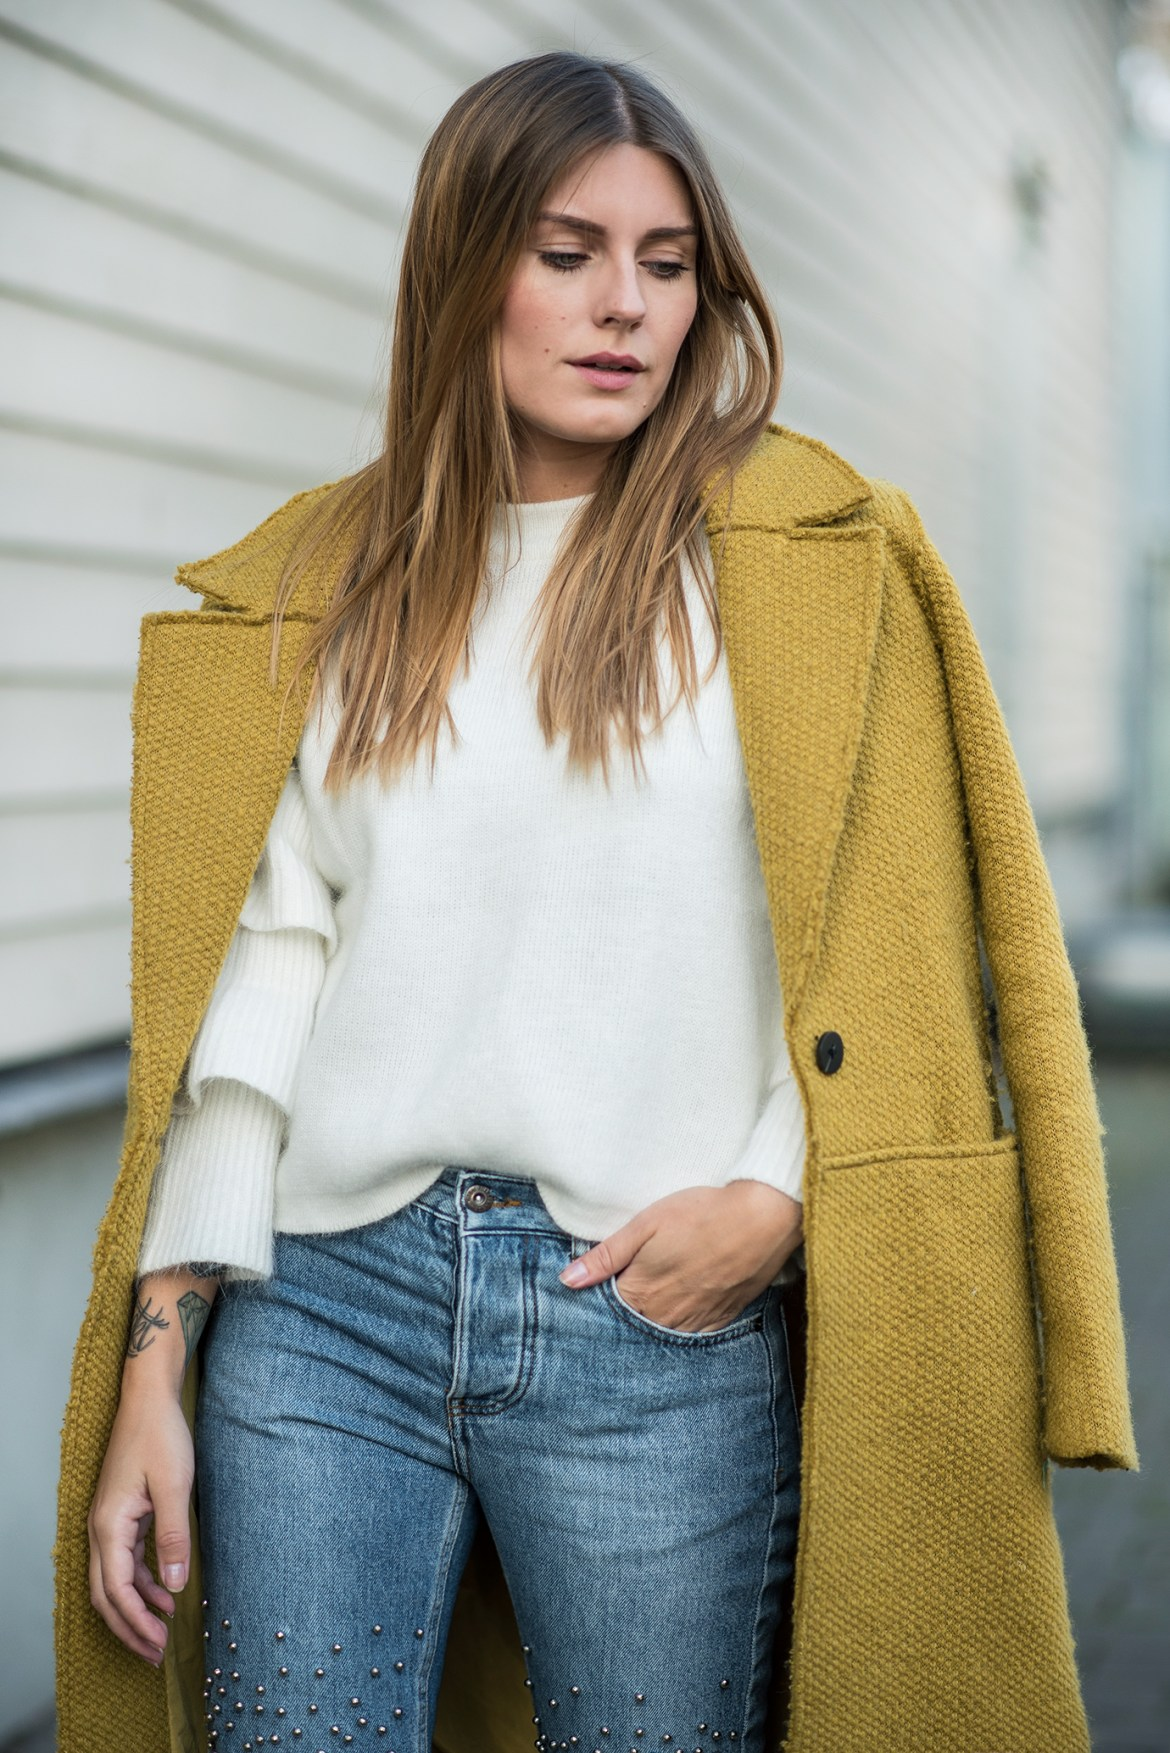 denim_girl_outfit_hoard_of_trends_5